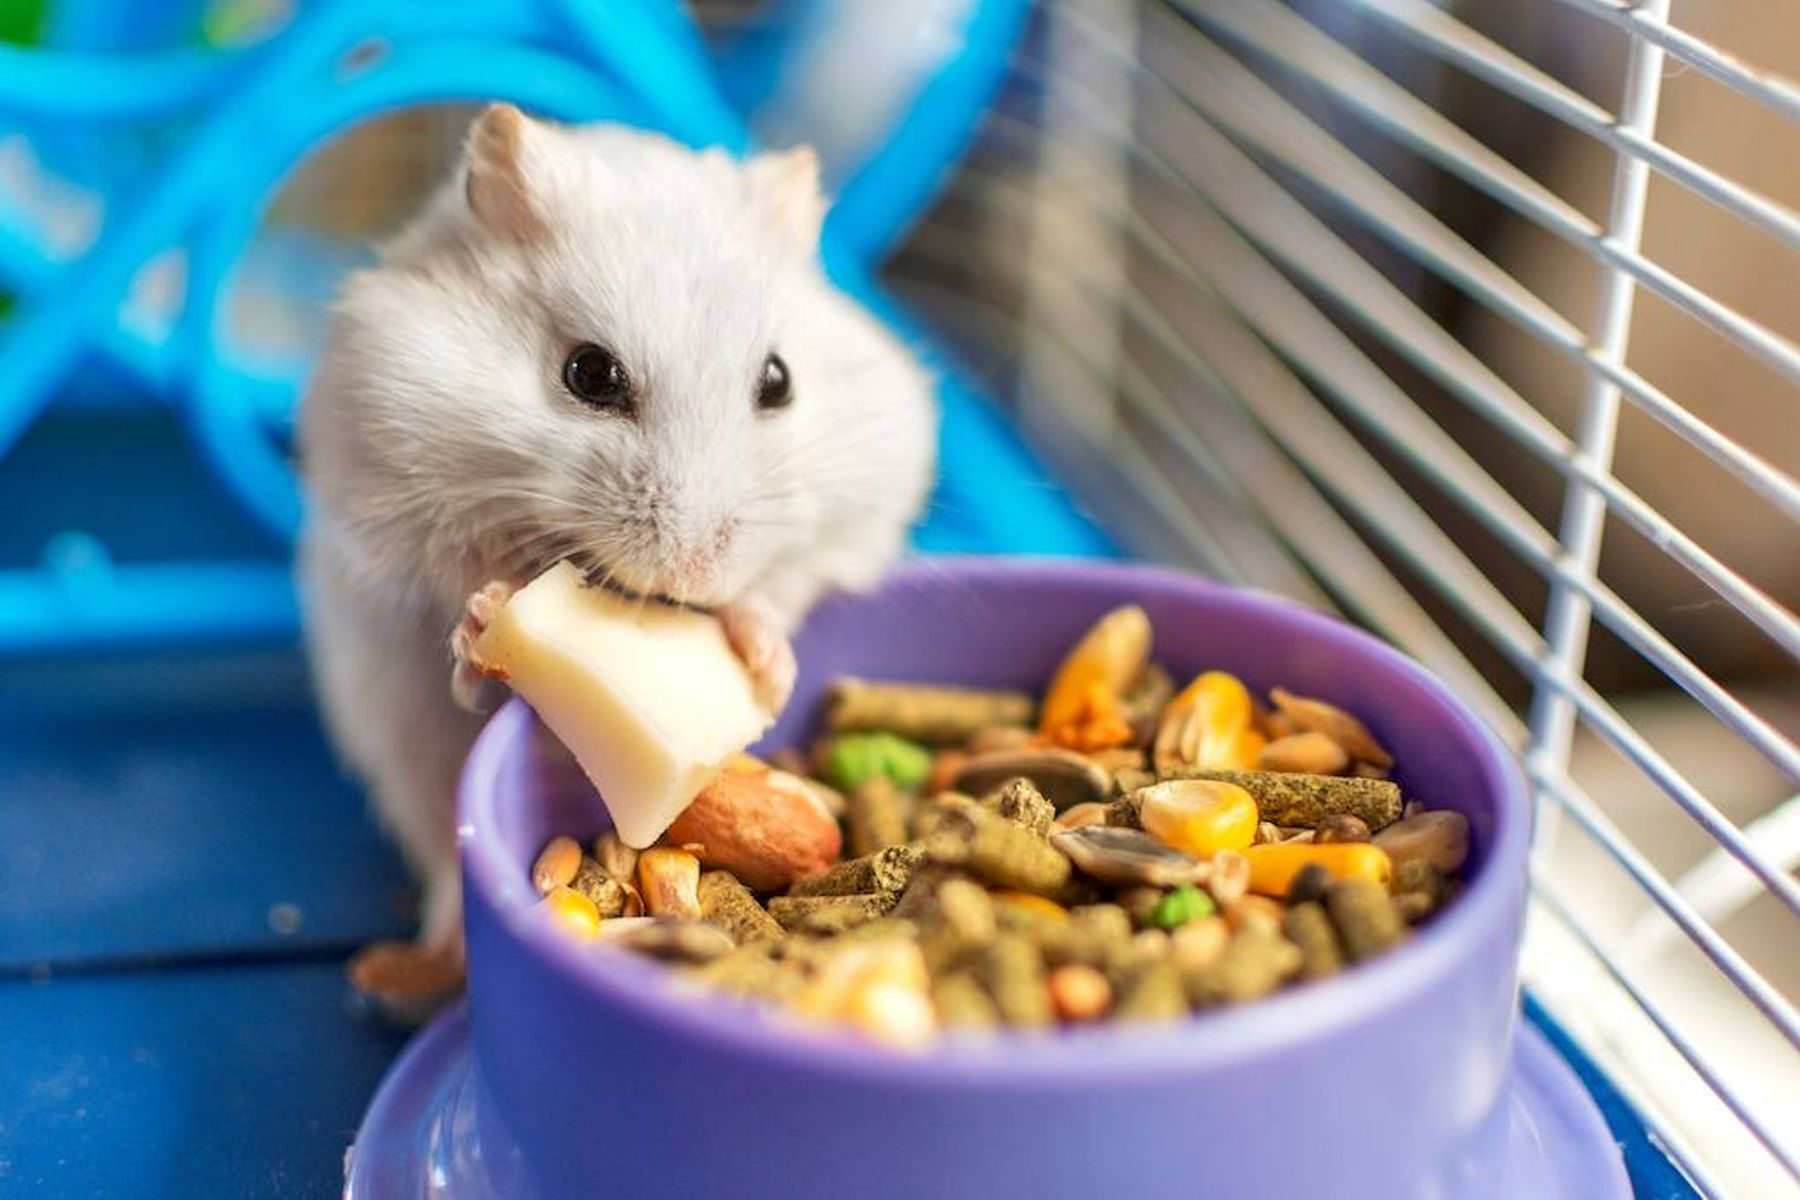 a white hamster eating food in a cage